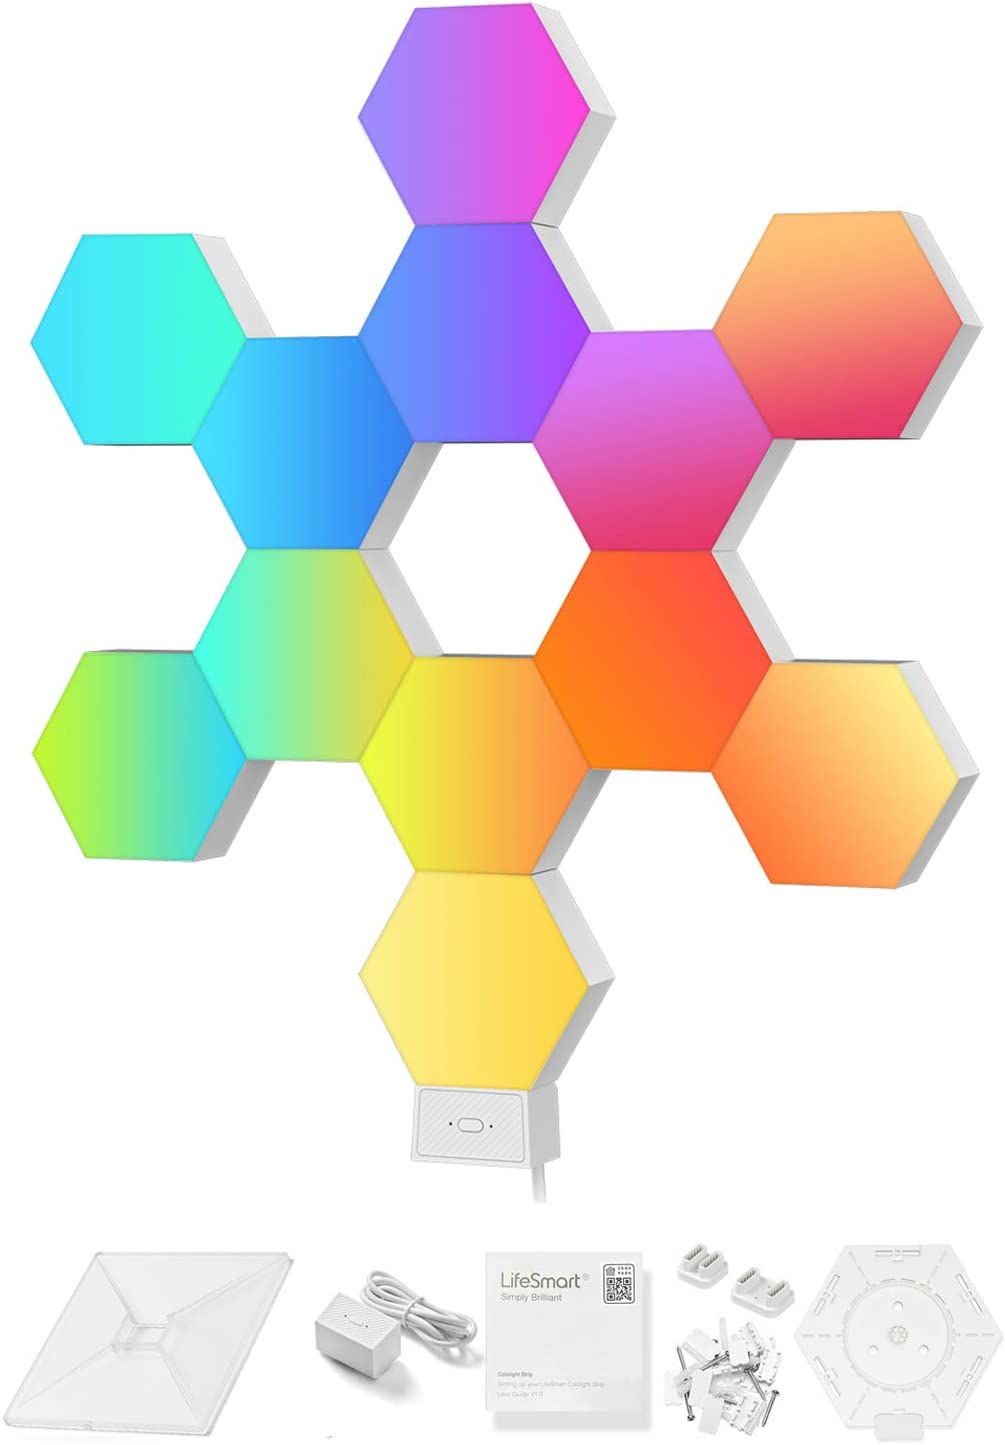 LifeSmart Hexagon LED Wall Light Works with Apple Homekit, APP Controlled LED Lamp Compatible with Alexa, Google Assistant, Cololight WiFi Smart RGB Panel Lights for Gaming Decoration,12pcs Plus Set